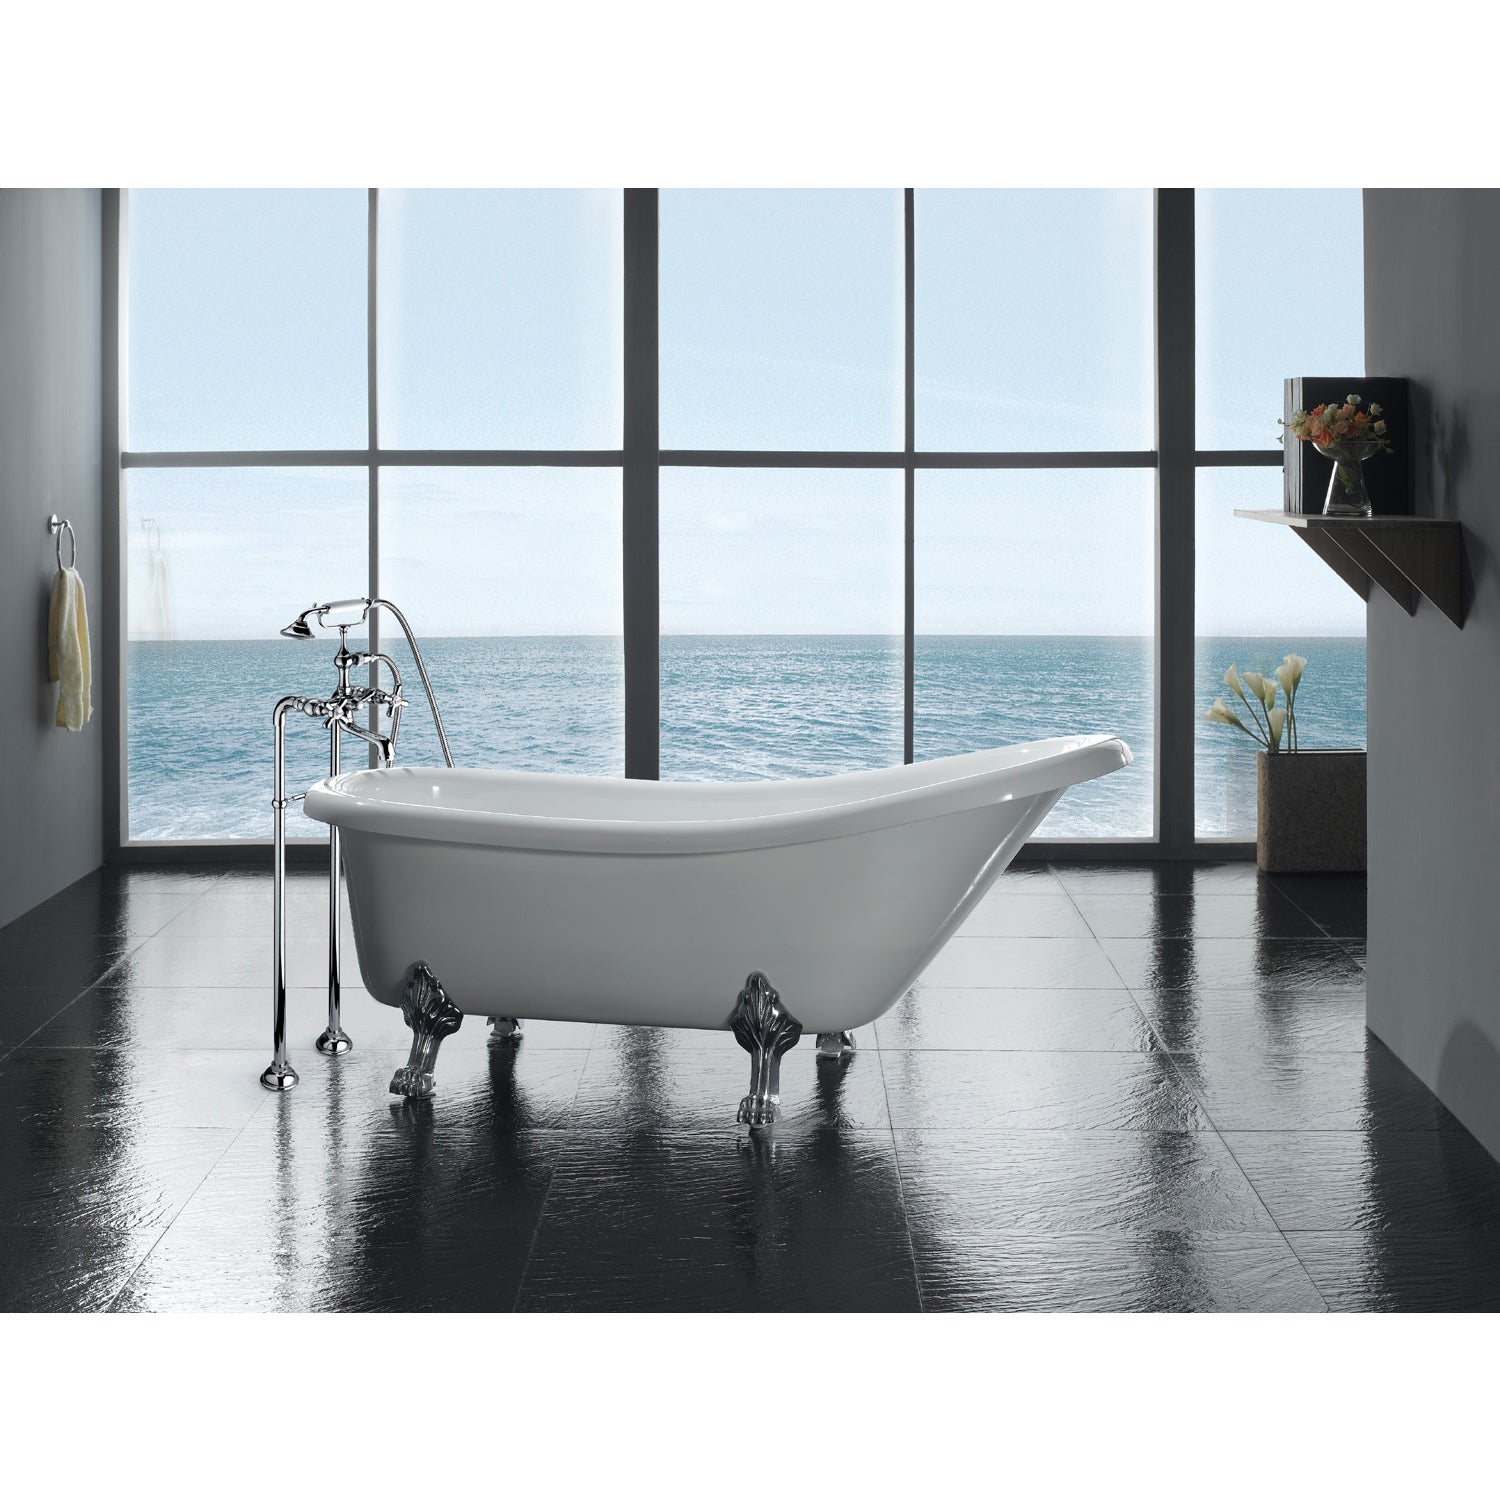 morris inch double no search acrylic s bathtub randolph vintage ended drillings bath freestanding results faucet tub